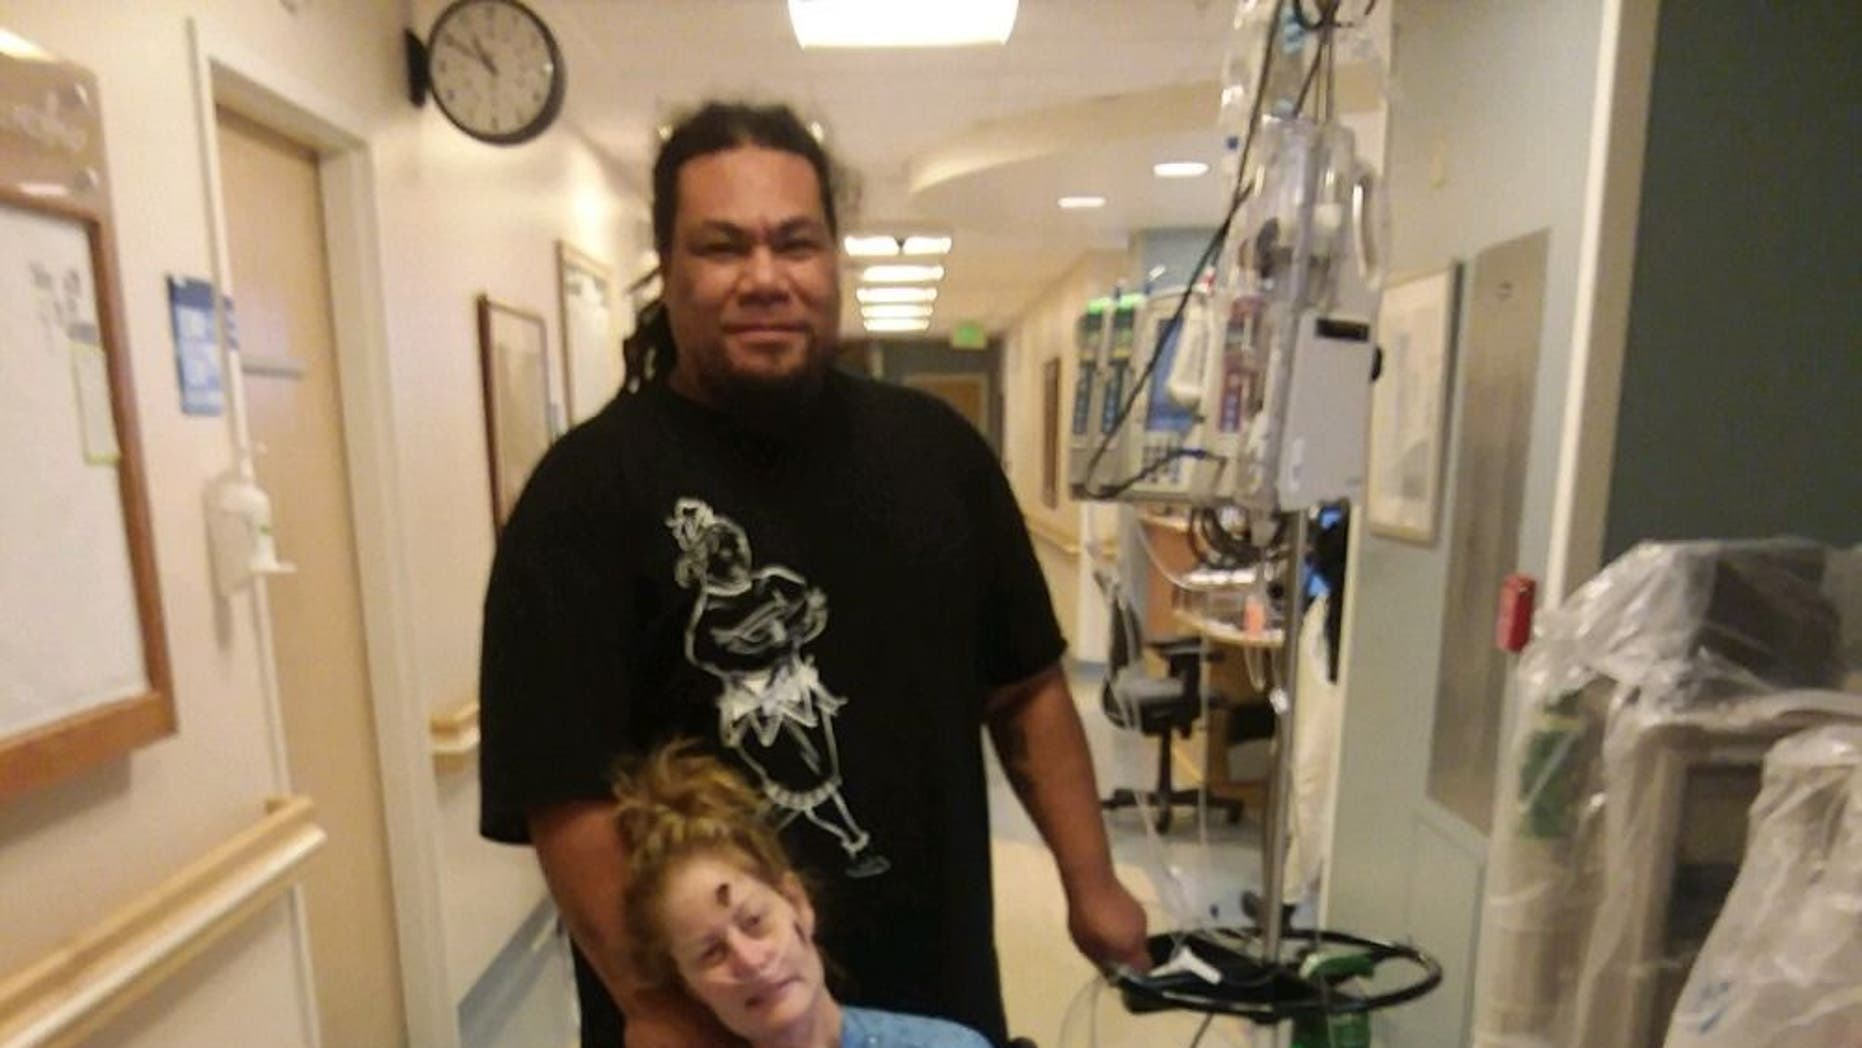 A Utah woman is in the hospital recovering after having both her arms and legs amputated.